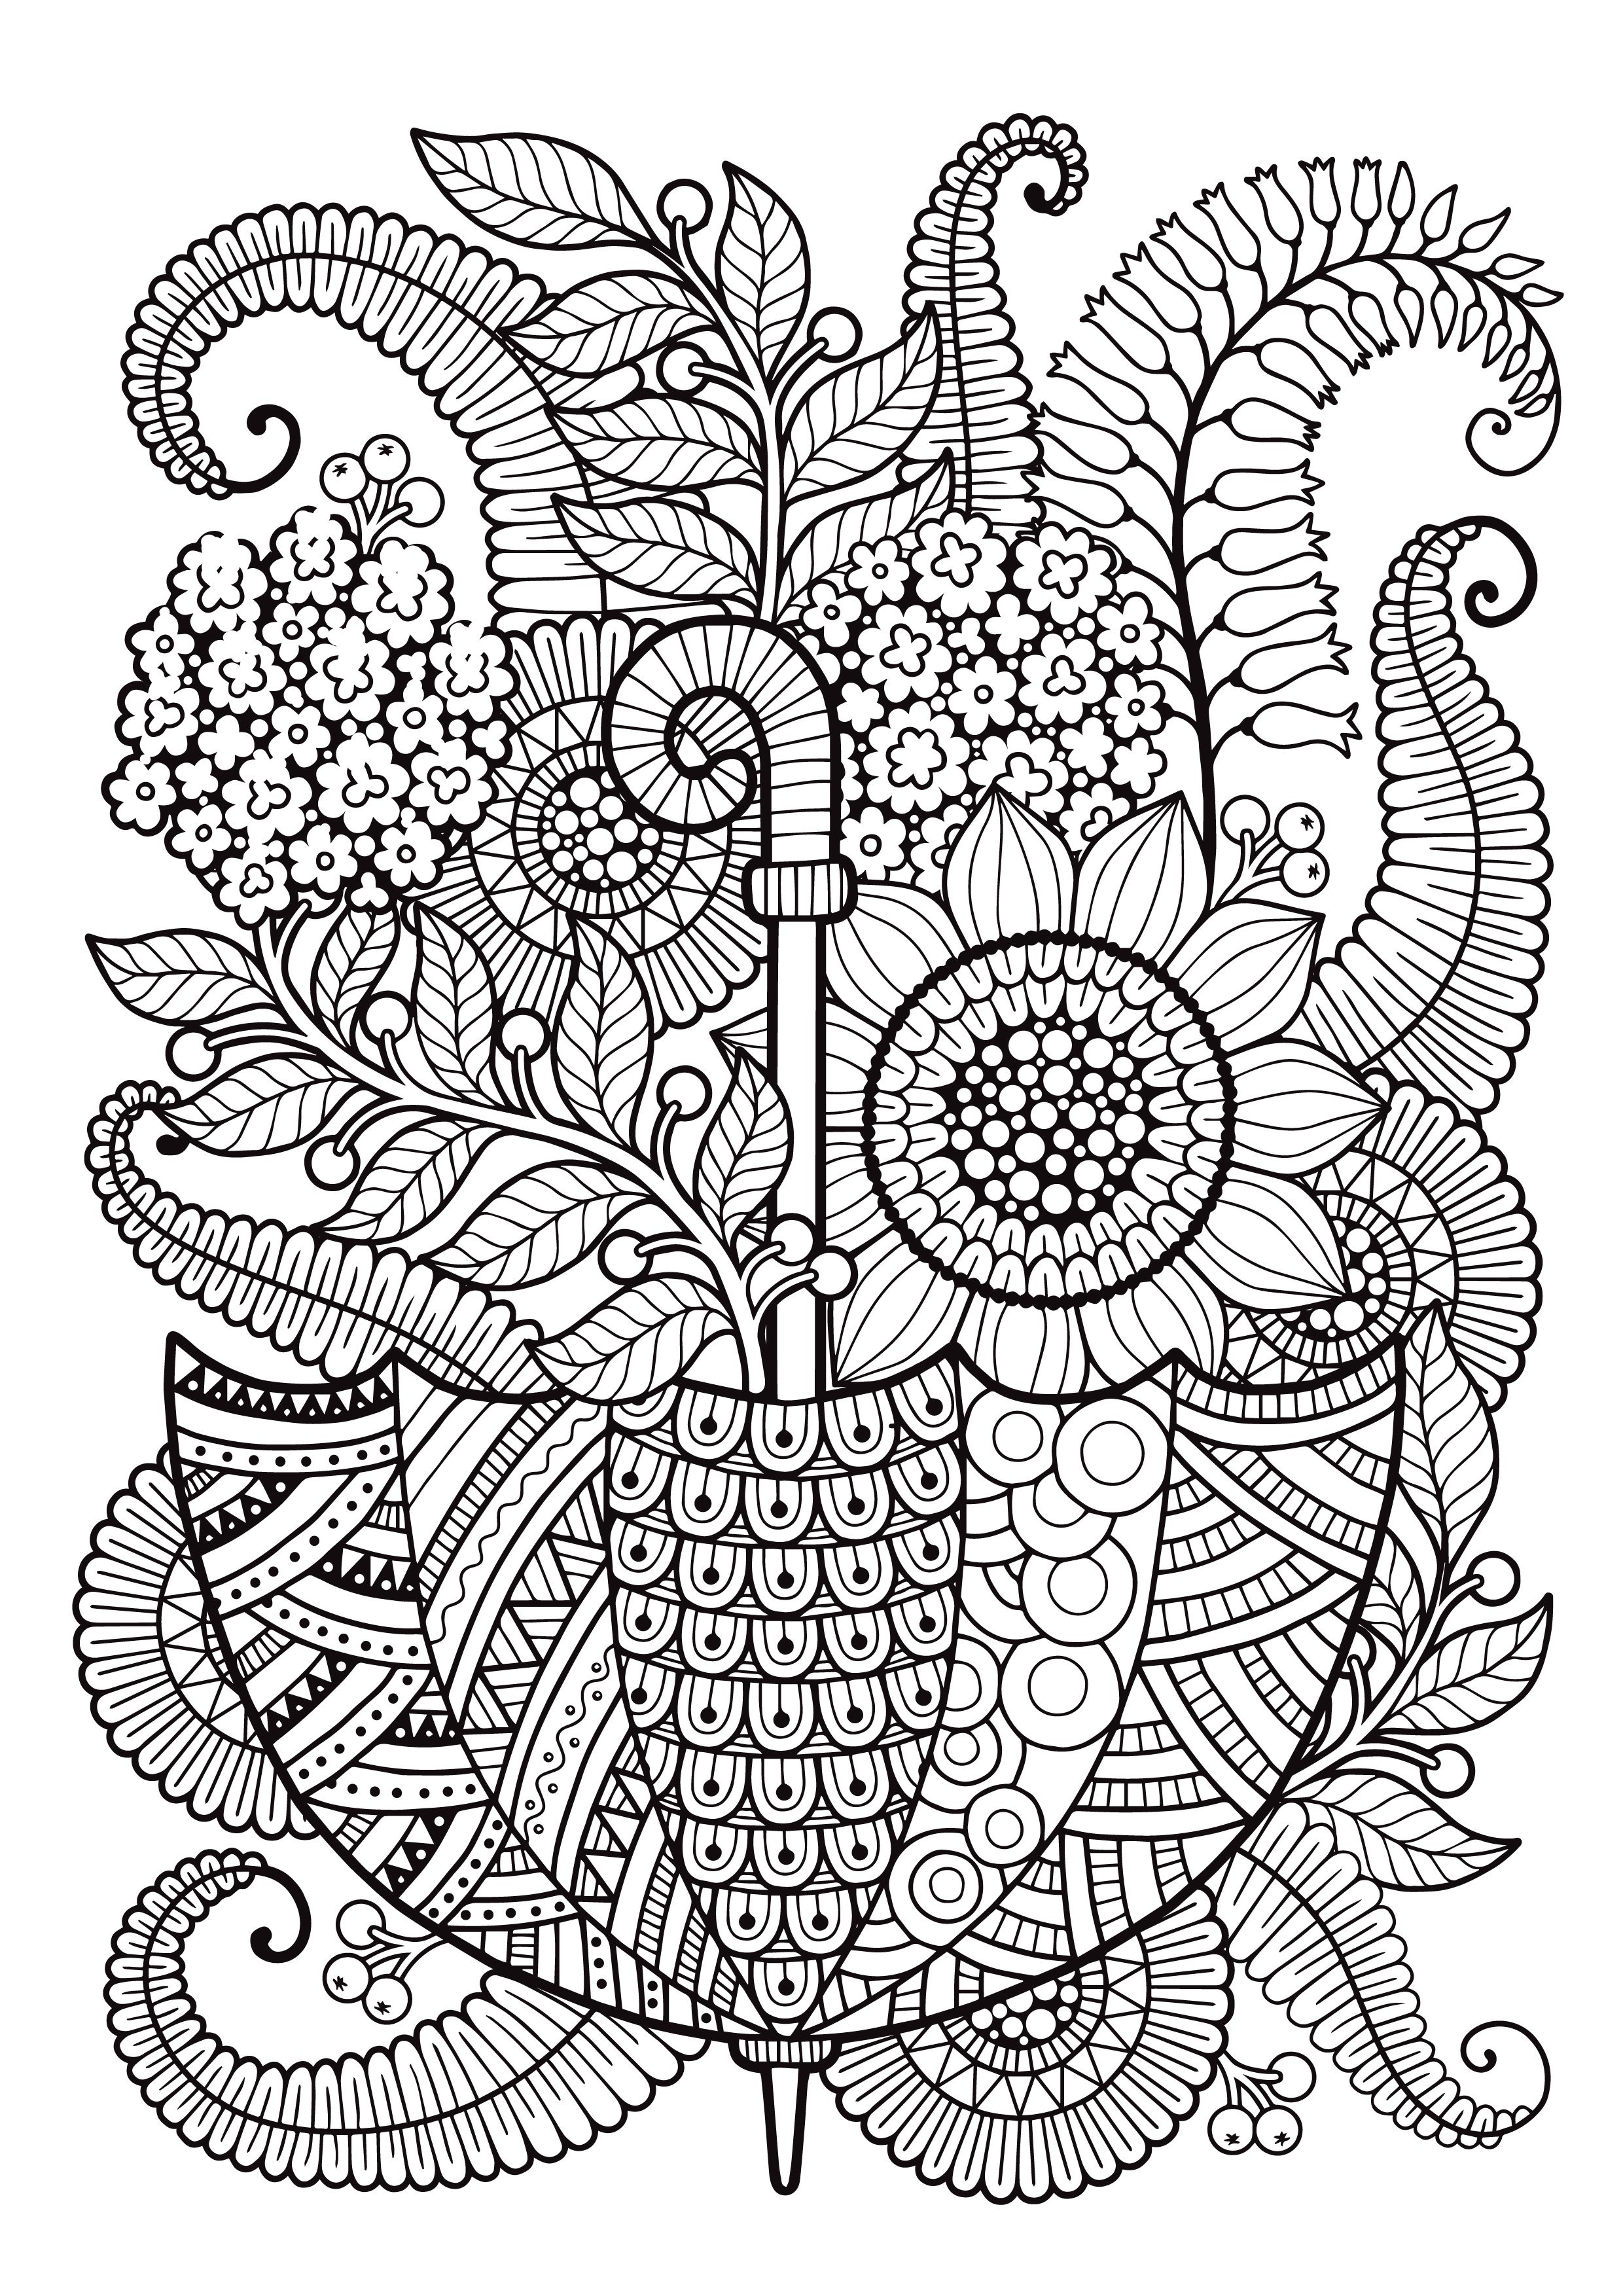 Mindfulness Coloring Mindfulness Colouring Mandala Coloring Pages Coloring Pages